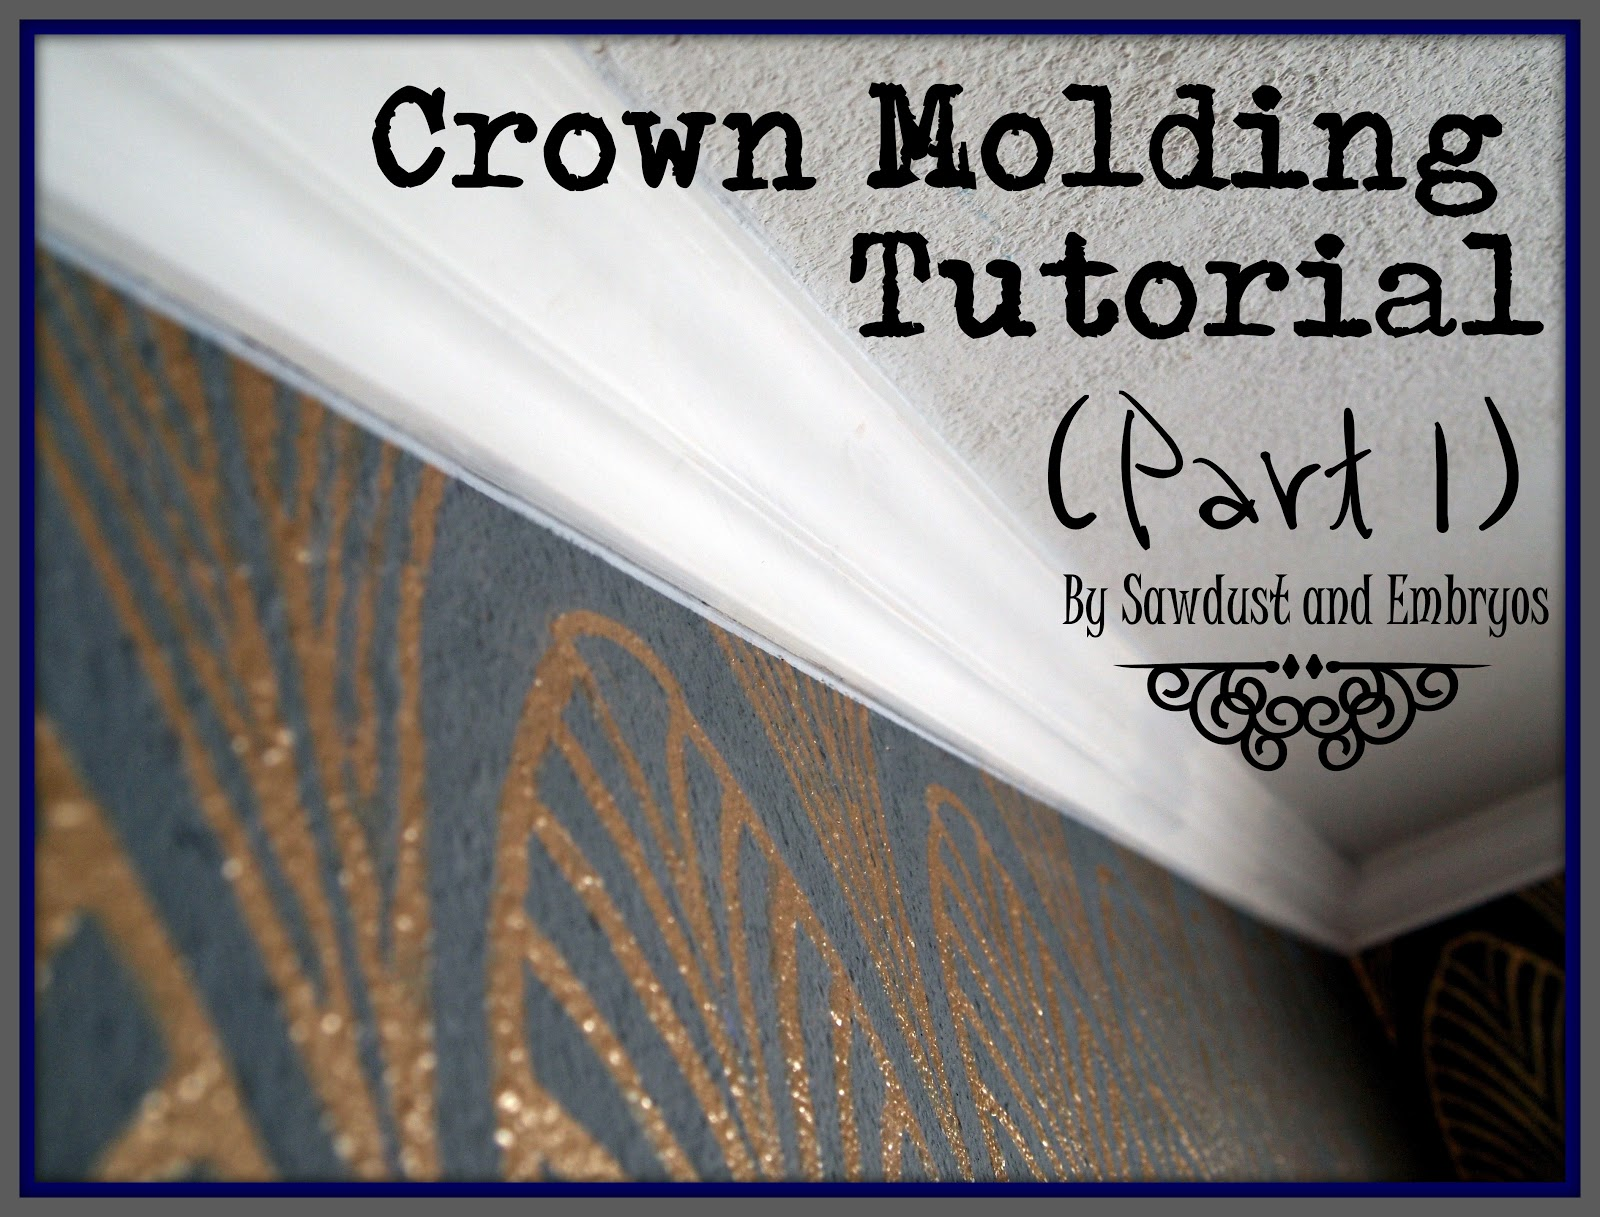 [Crown%2520Molding%2520Tutorial%2520%2528Part%25201%2529%2520by%2520Sawdust%2520and%2520Embryos%255B6%255D.jpg]